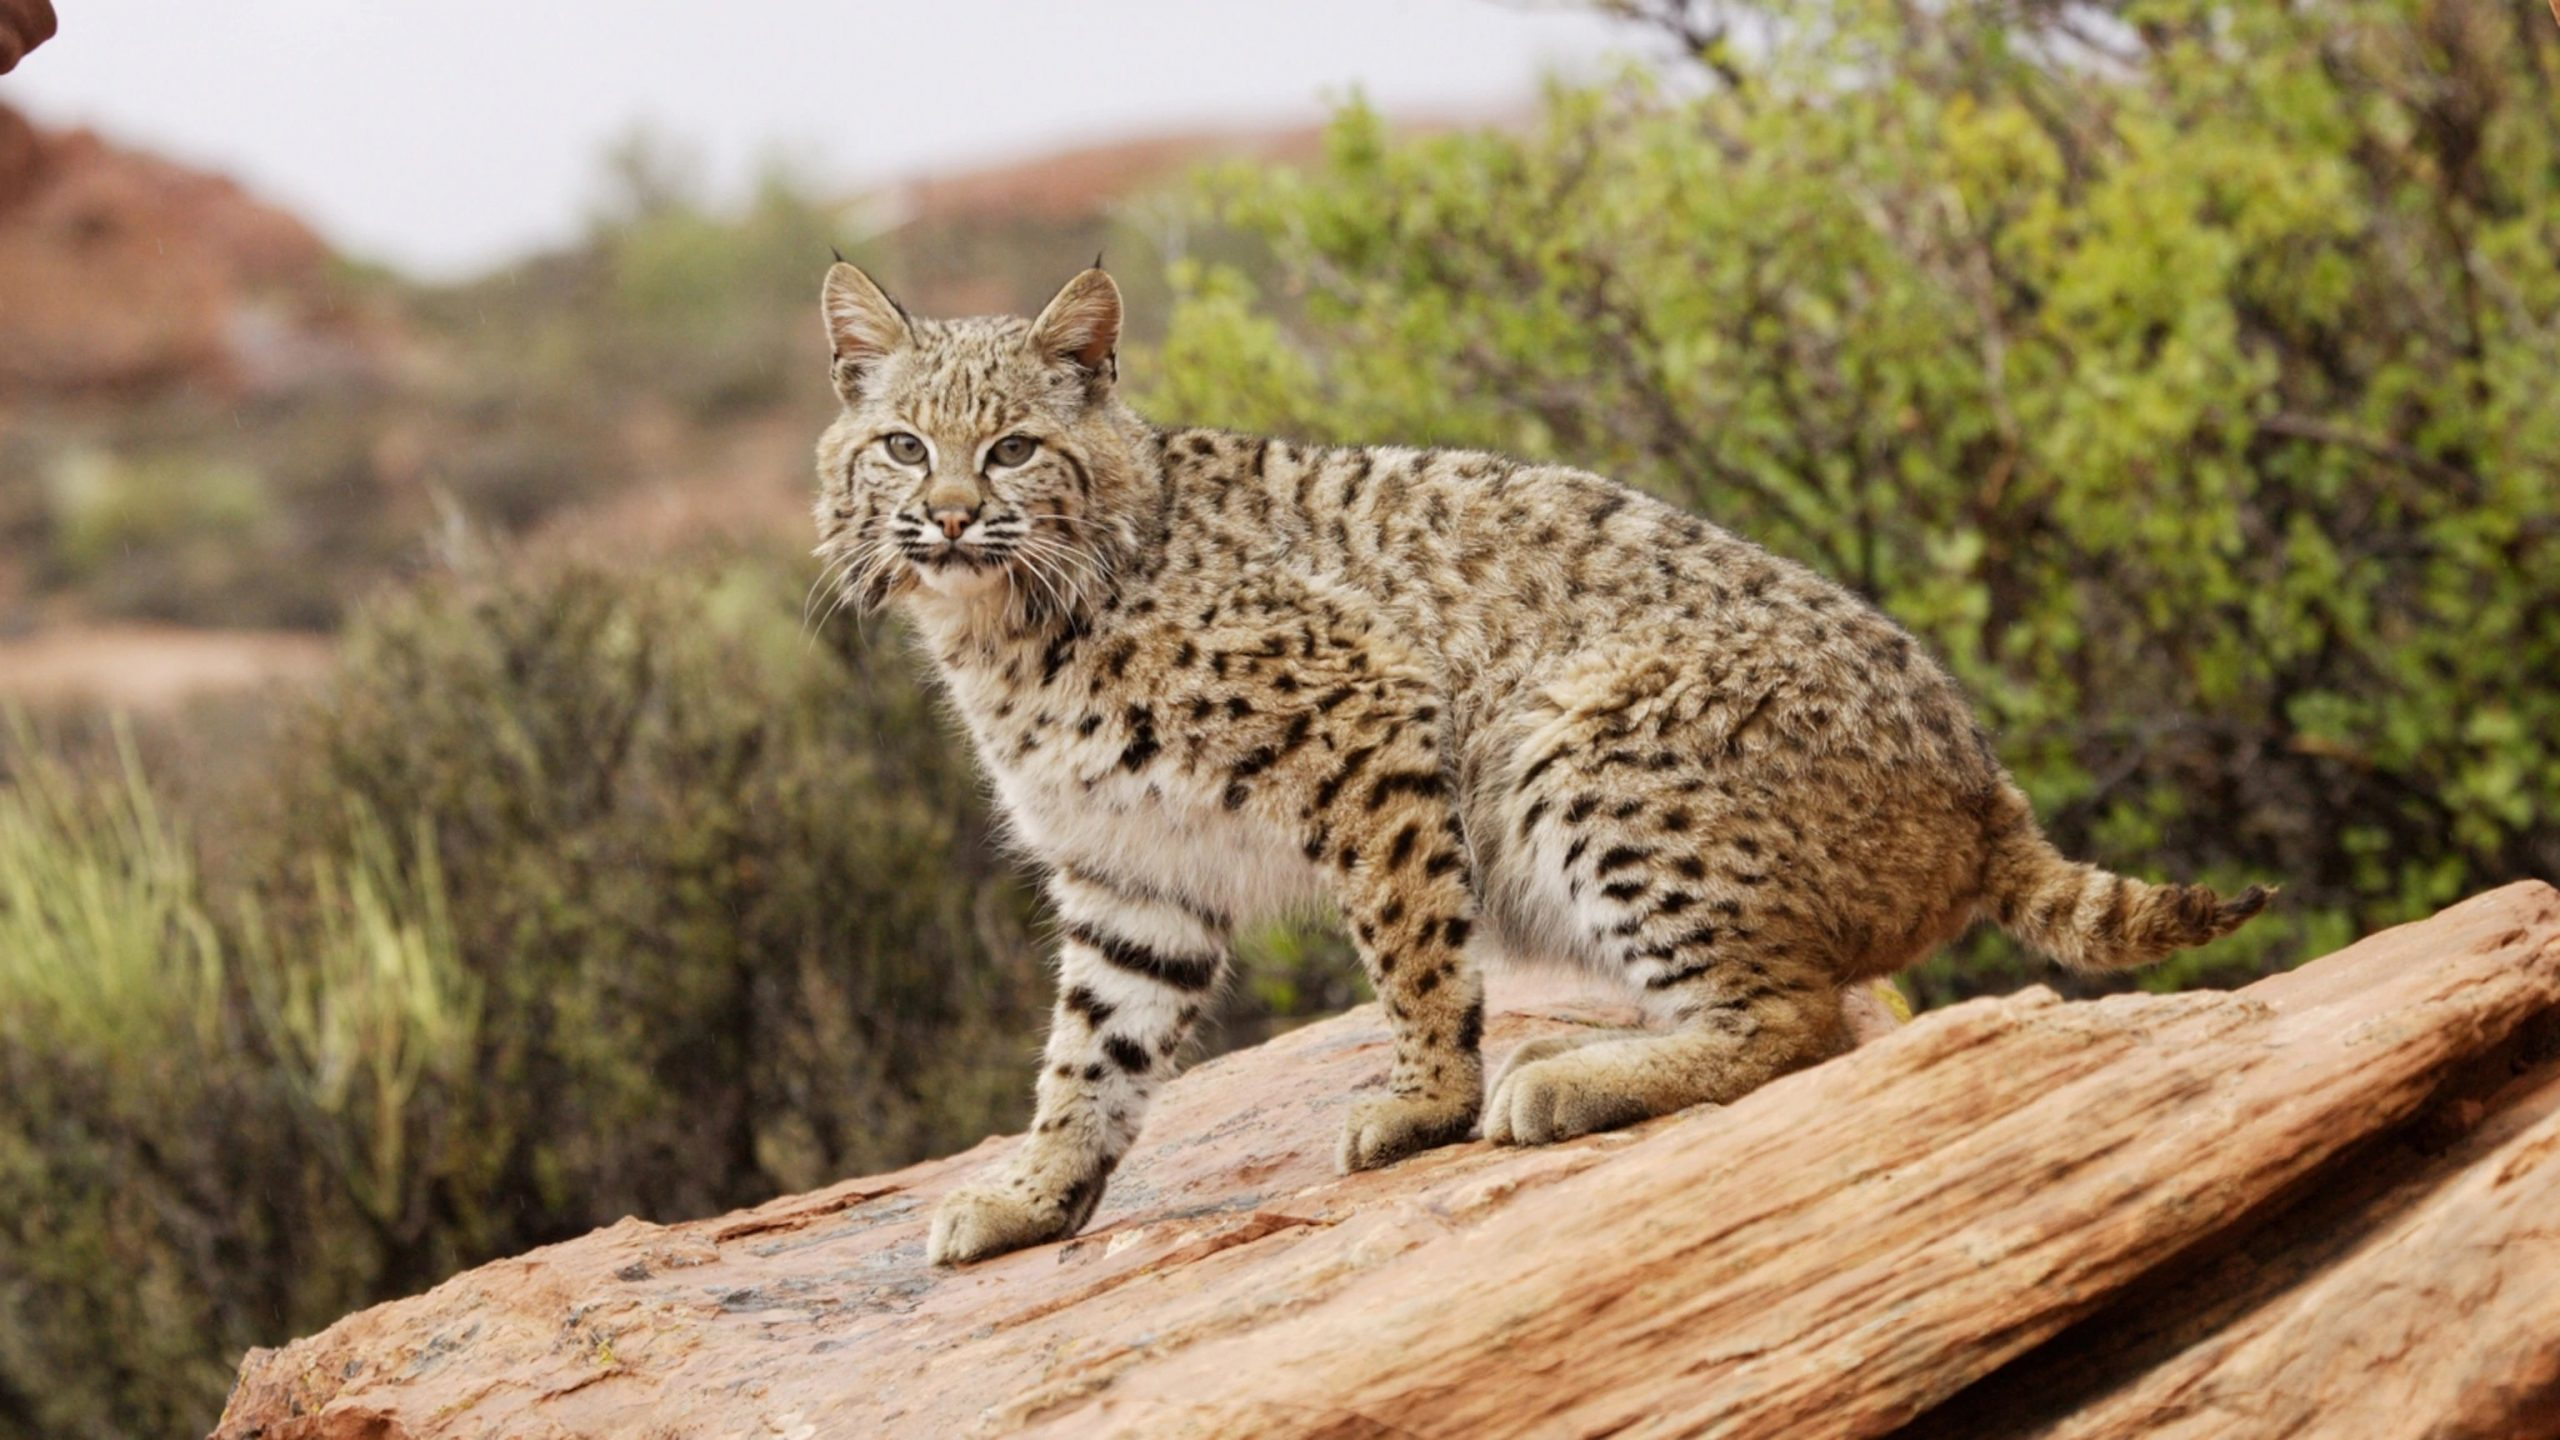 Man defends wife from Bobcat attack in viral video